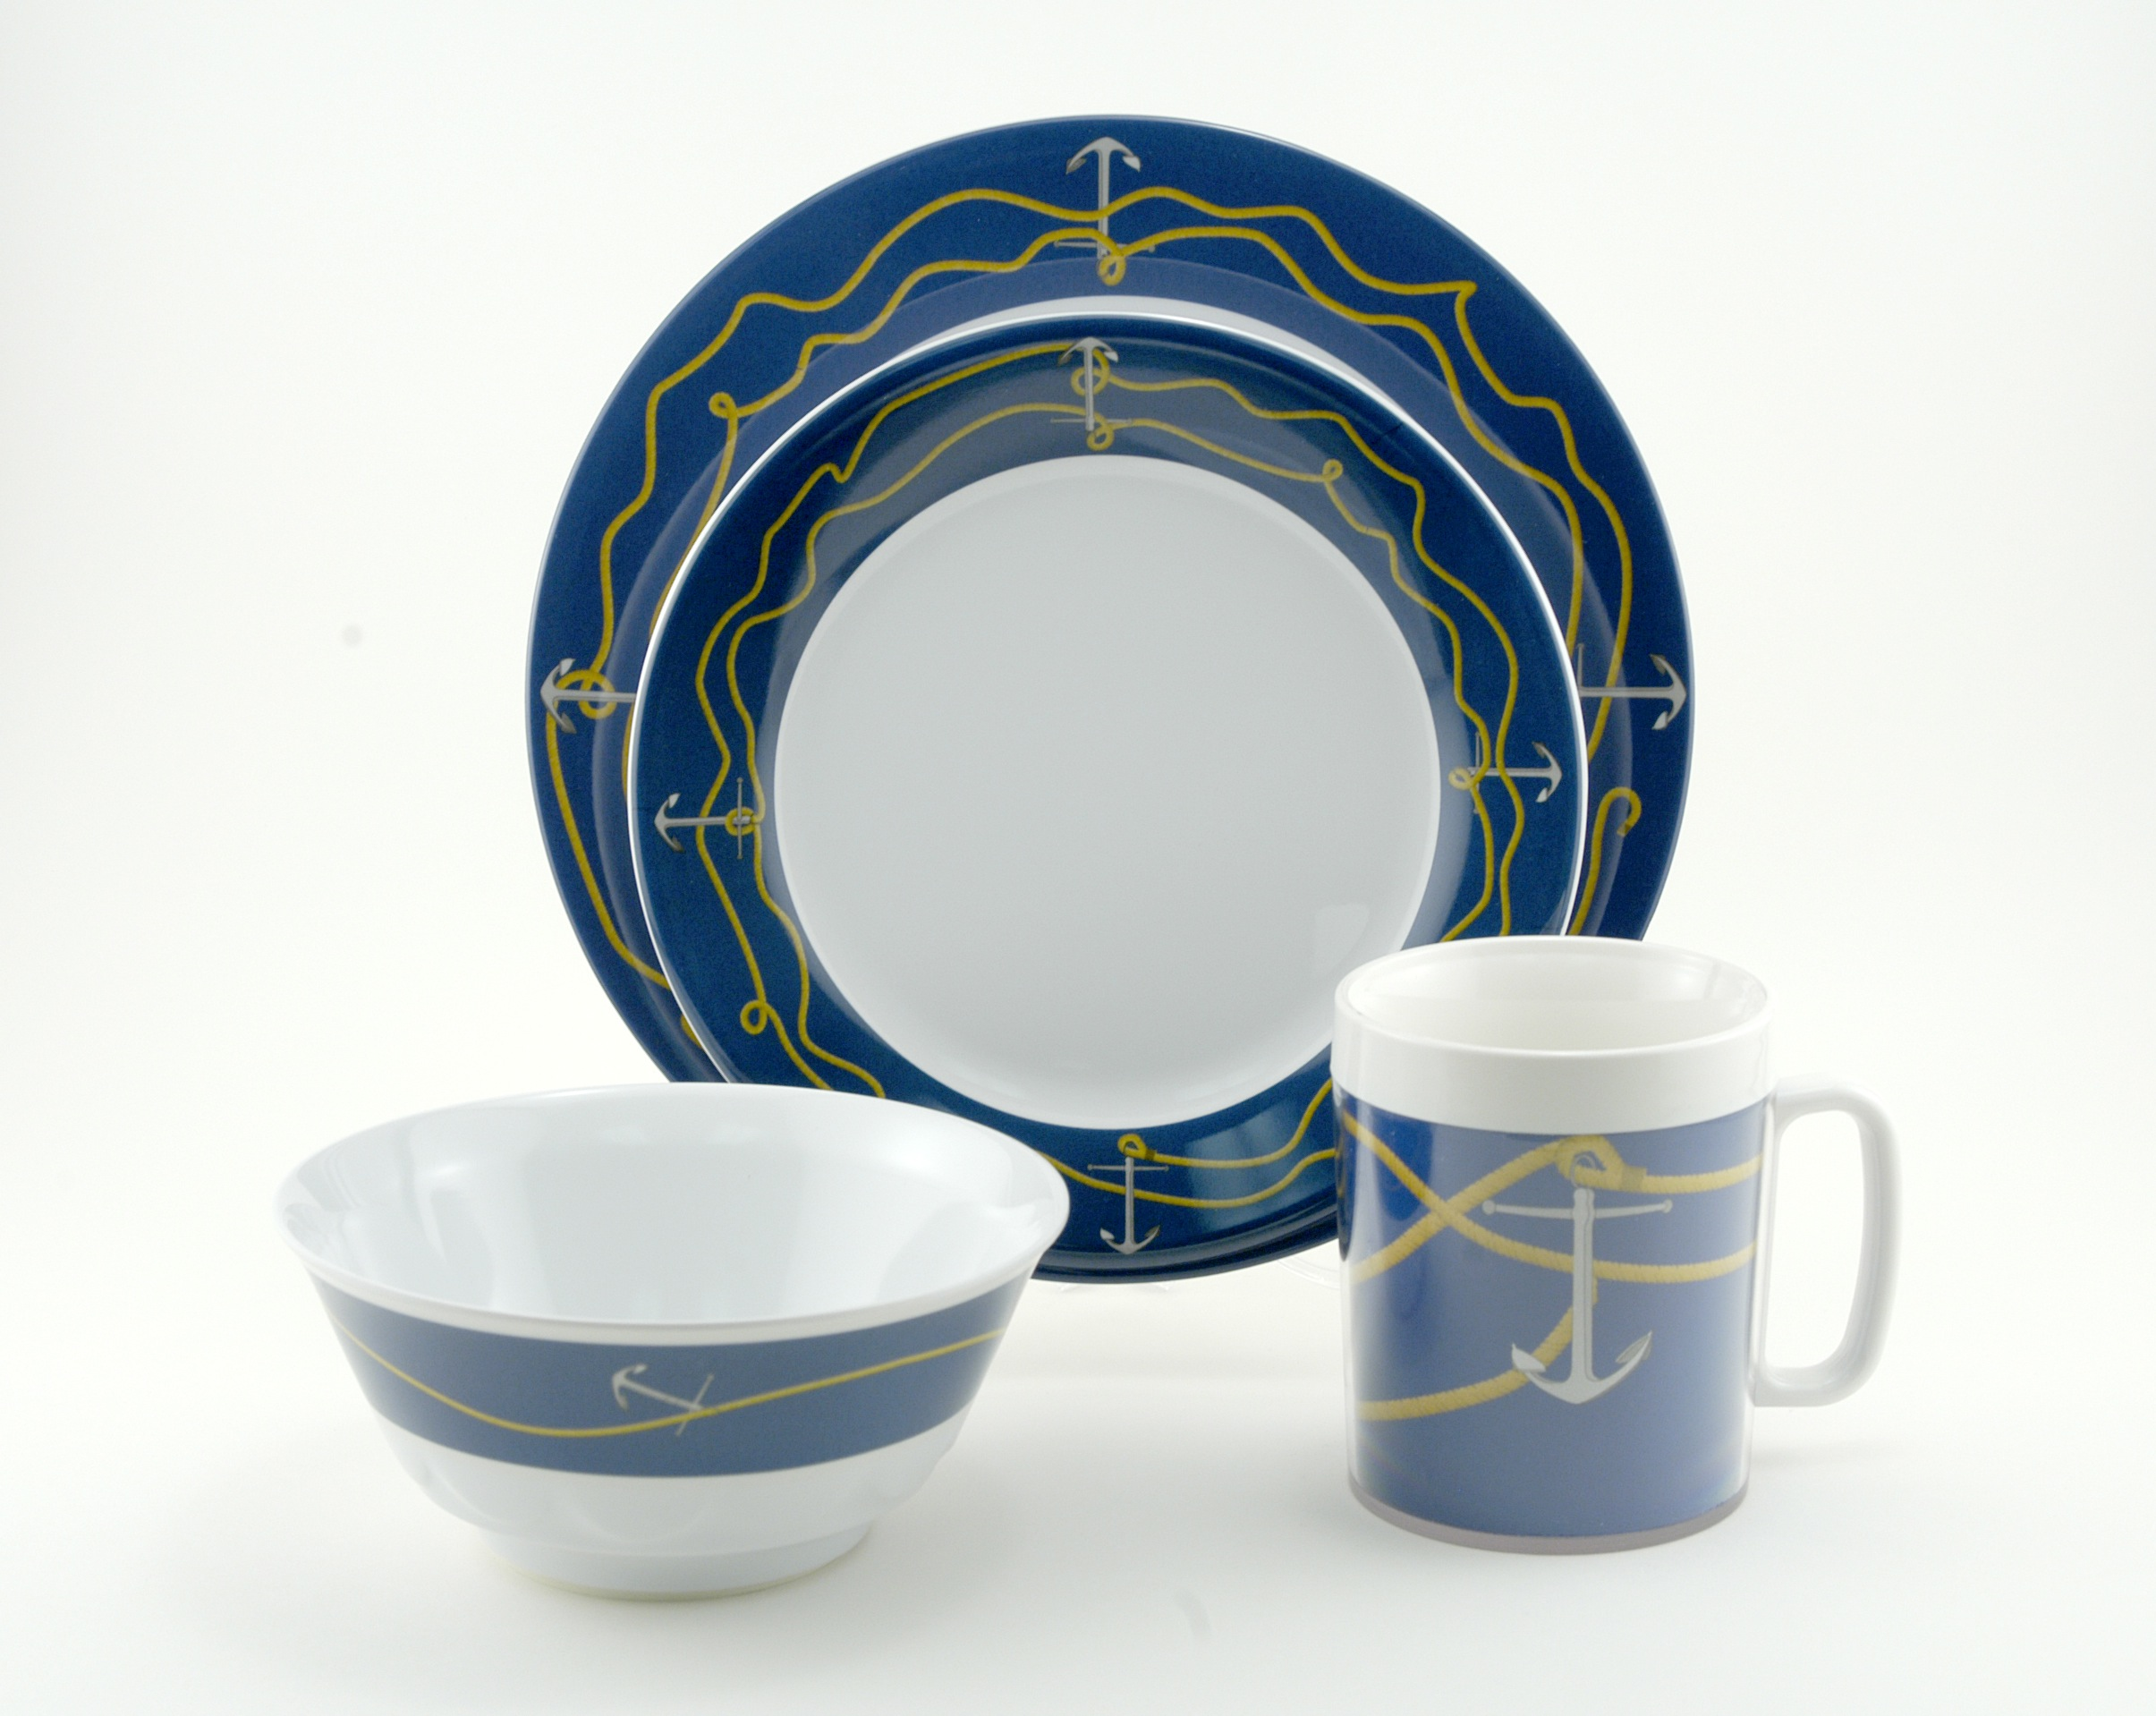 The Anchorline Collection & Coastal Melamine Dinnerware | Nautical non-skid Melamine